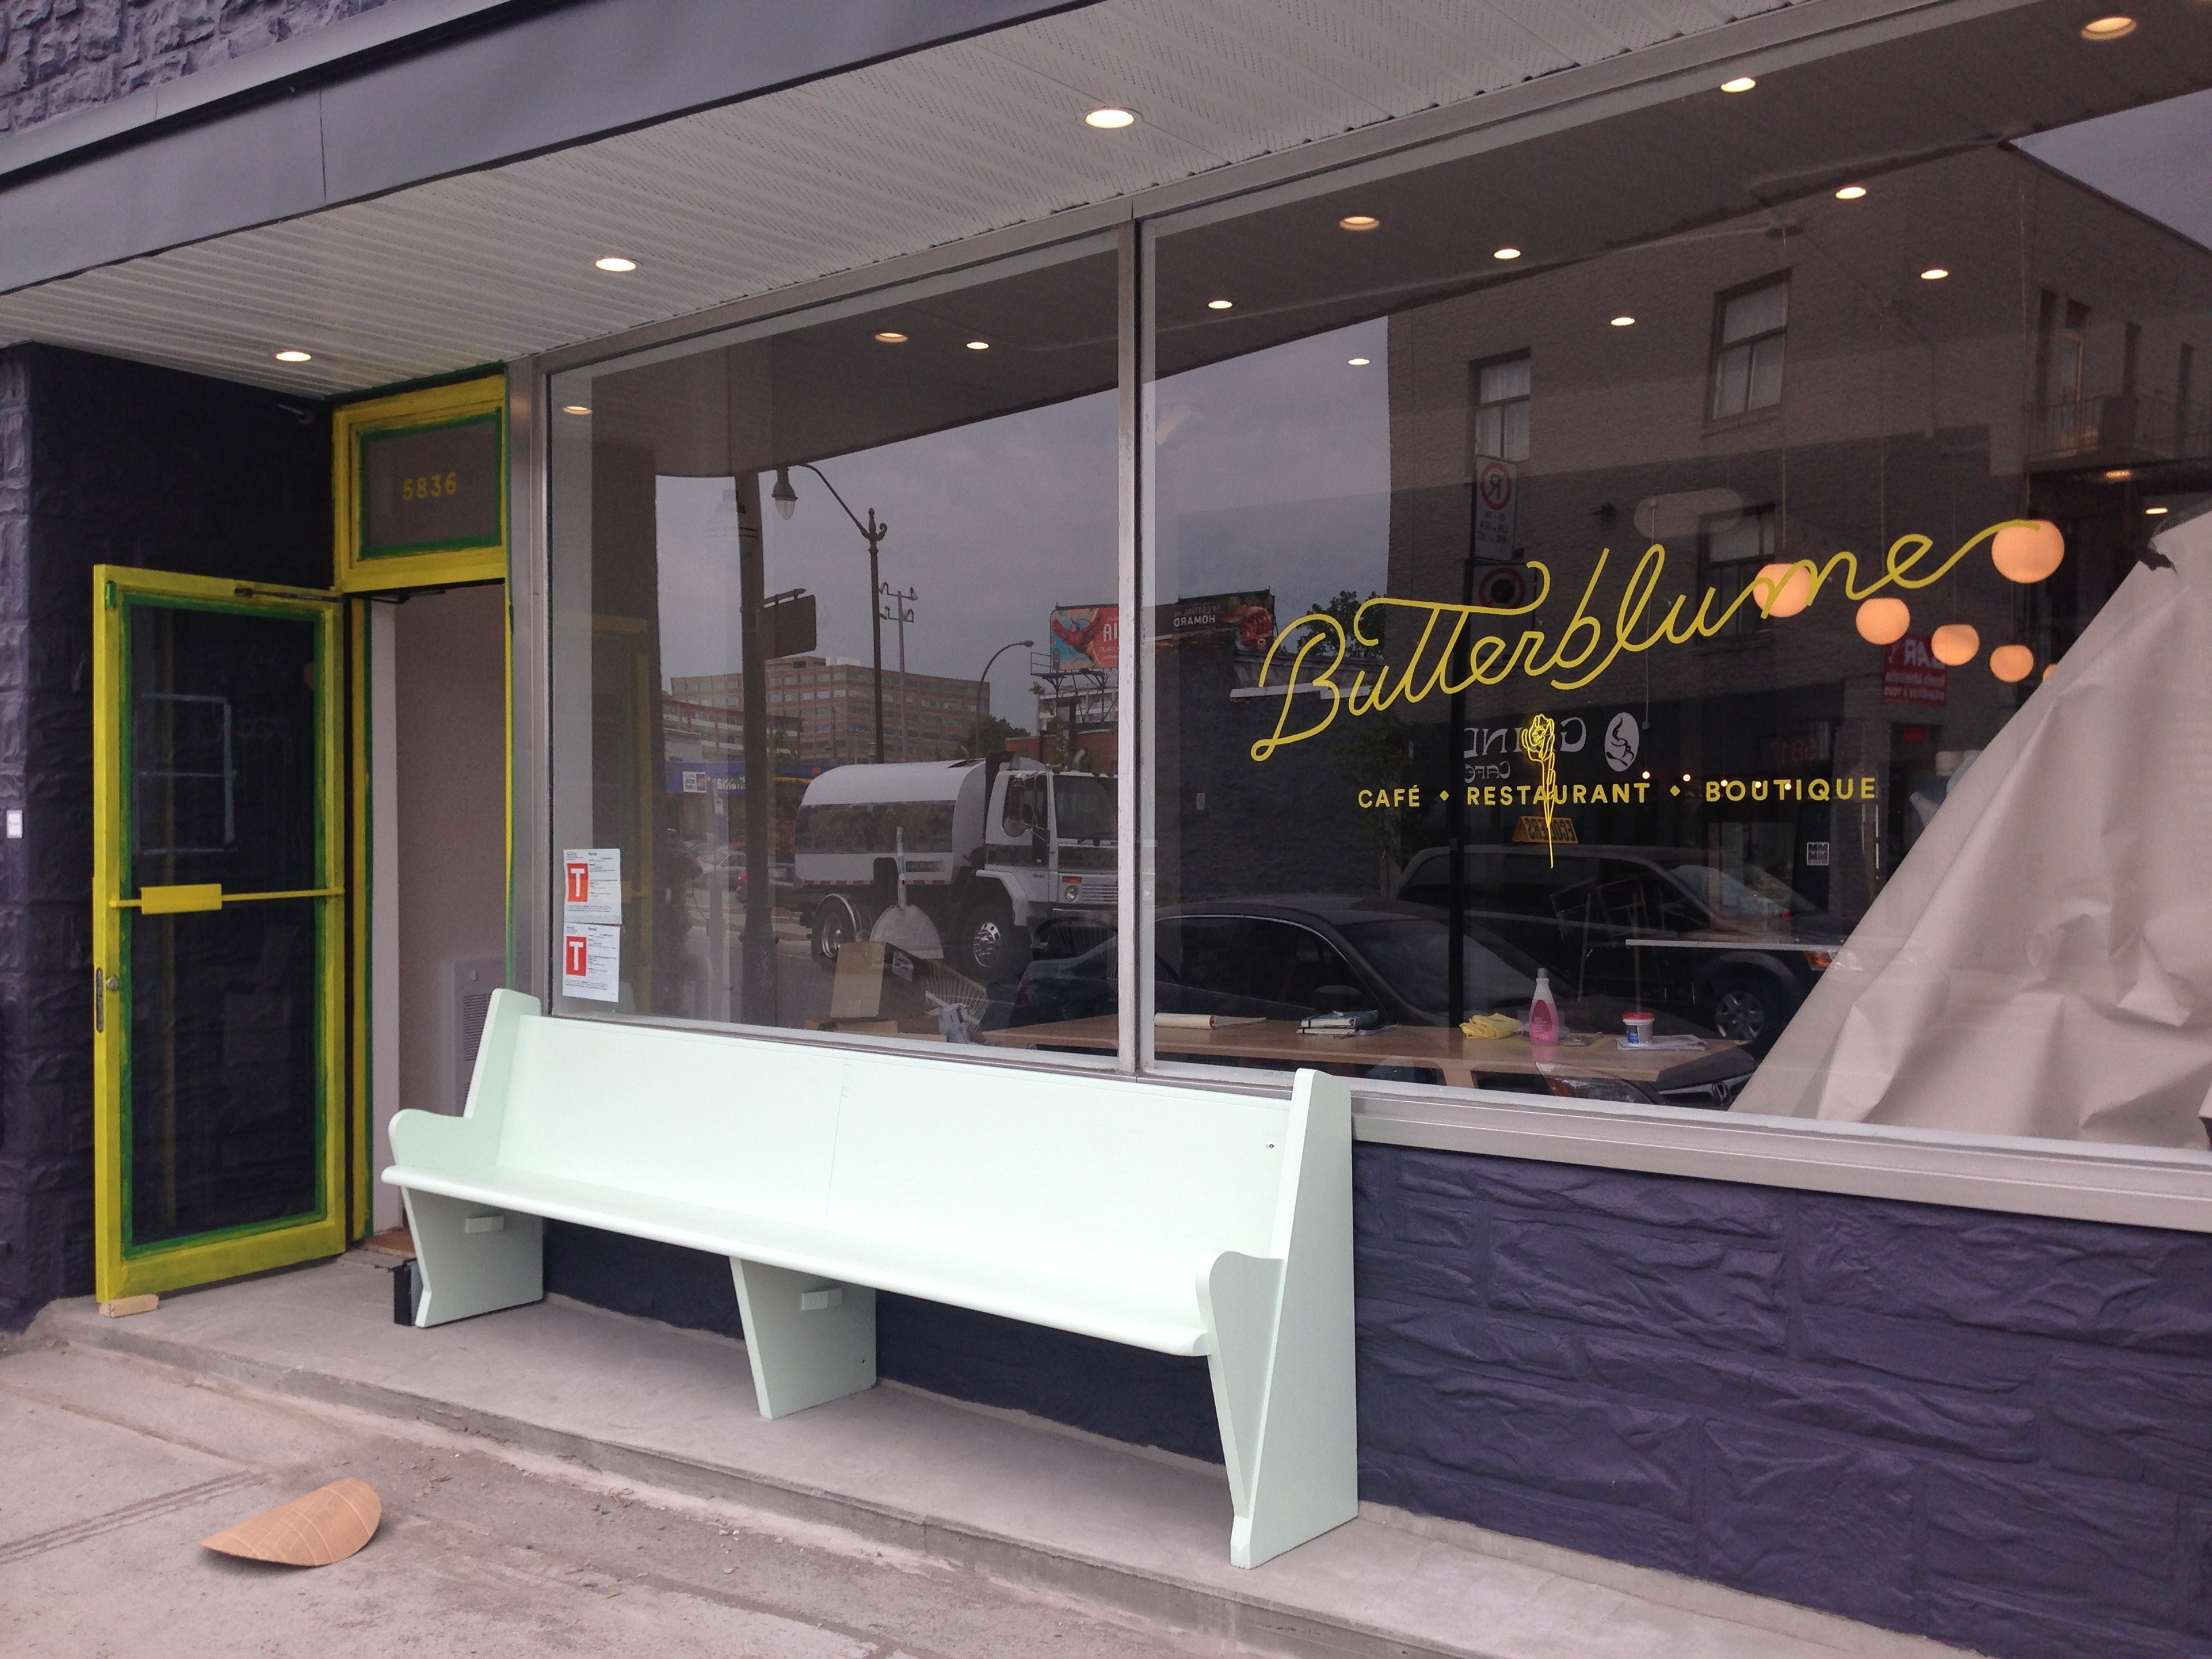 The soon-to-open Butterblume in Mile End